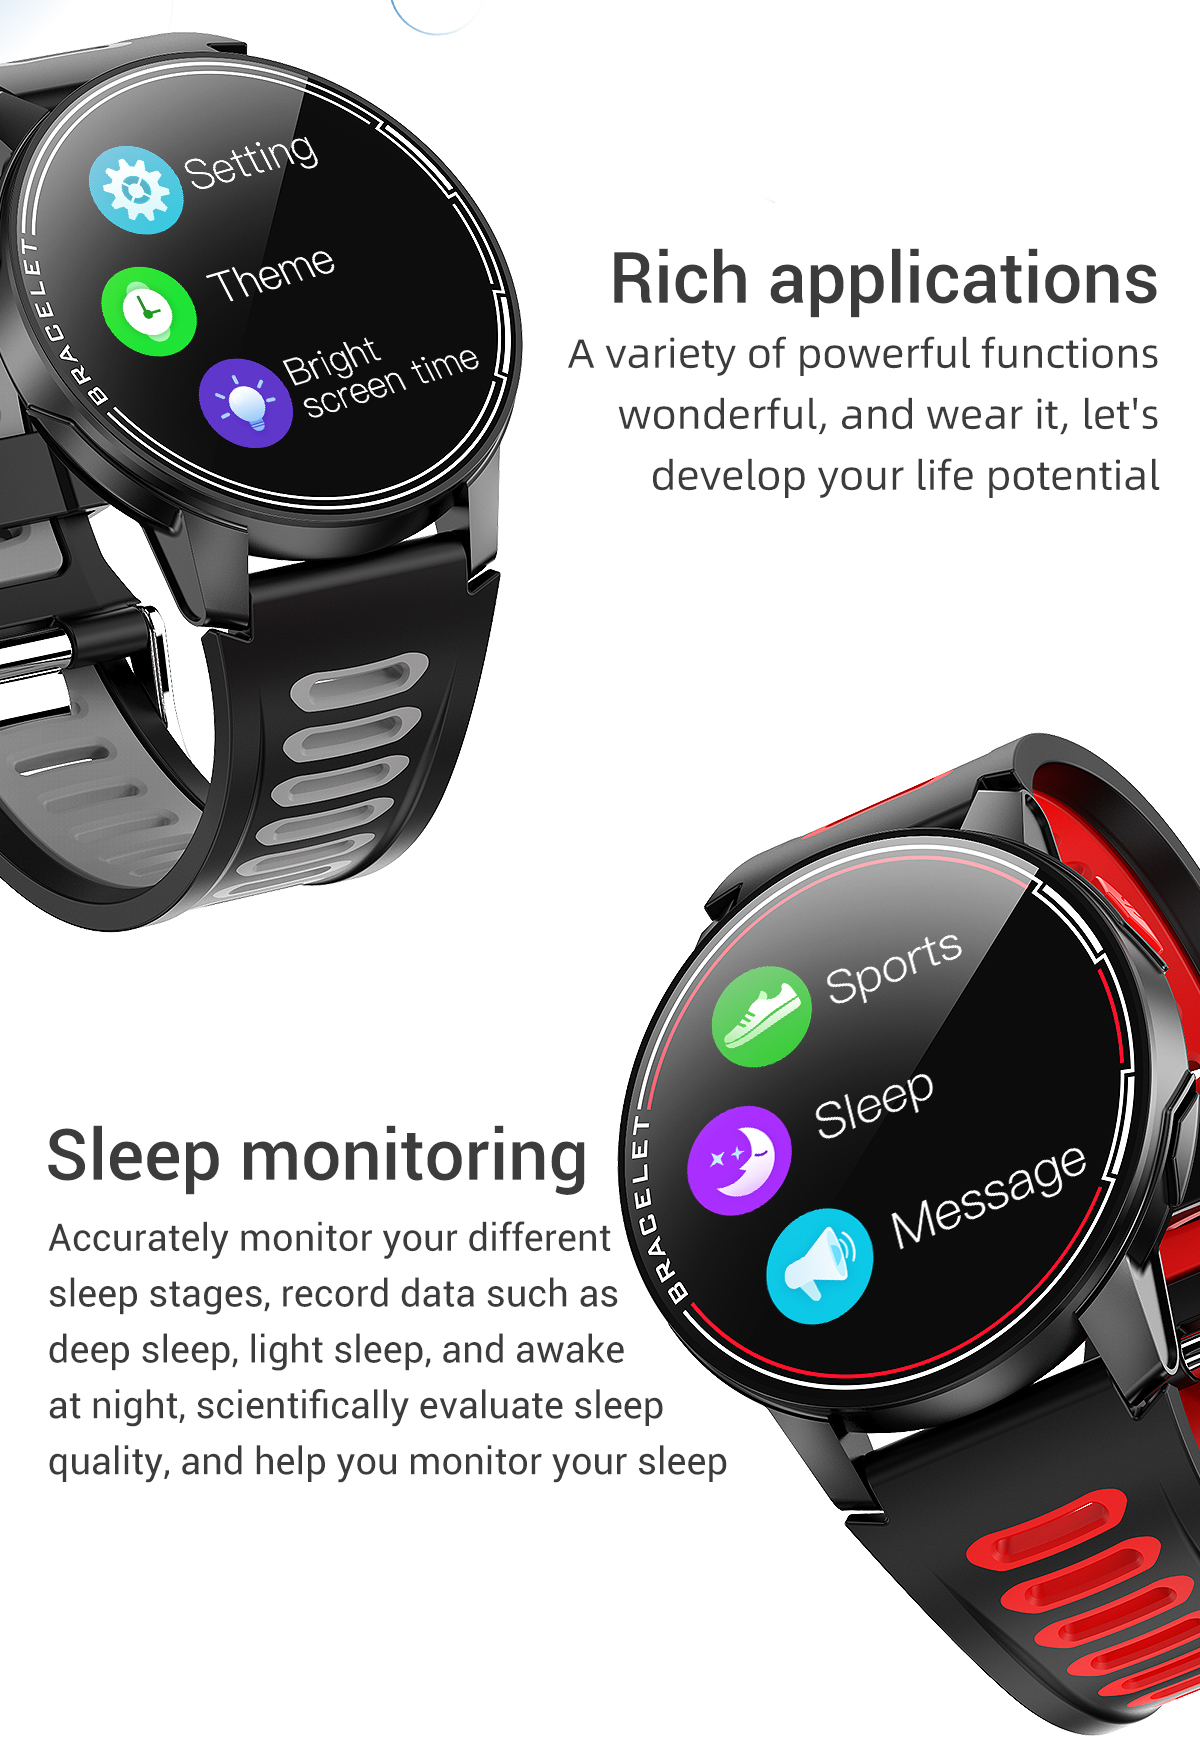 Hc038687ac3d74069bf26ac1f65dc90a6k 2020 New L6 Smart Watch IP68 Waterproof Sport Men Women Bluetooth Smartwatch Fitness Tracker Heart Rate Monitor For Android IOS